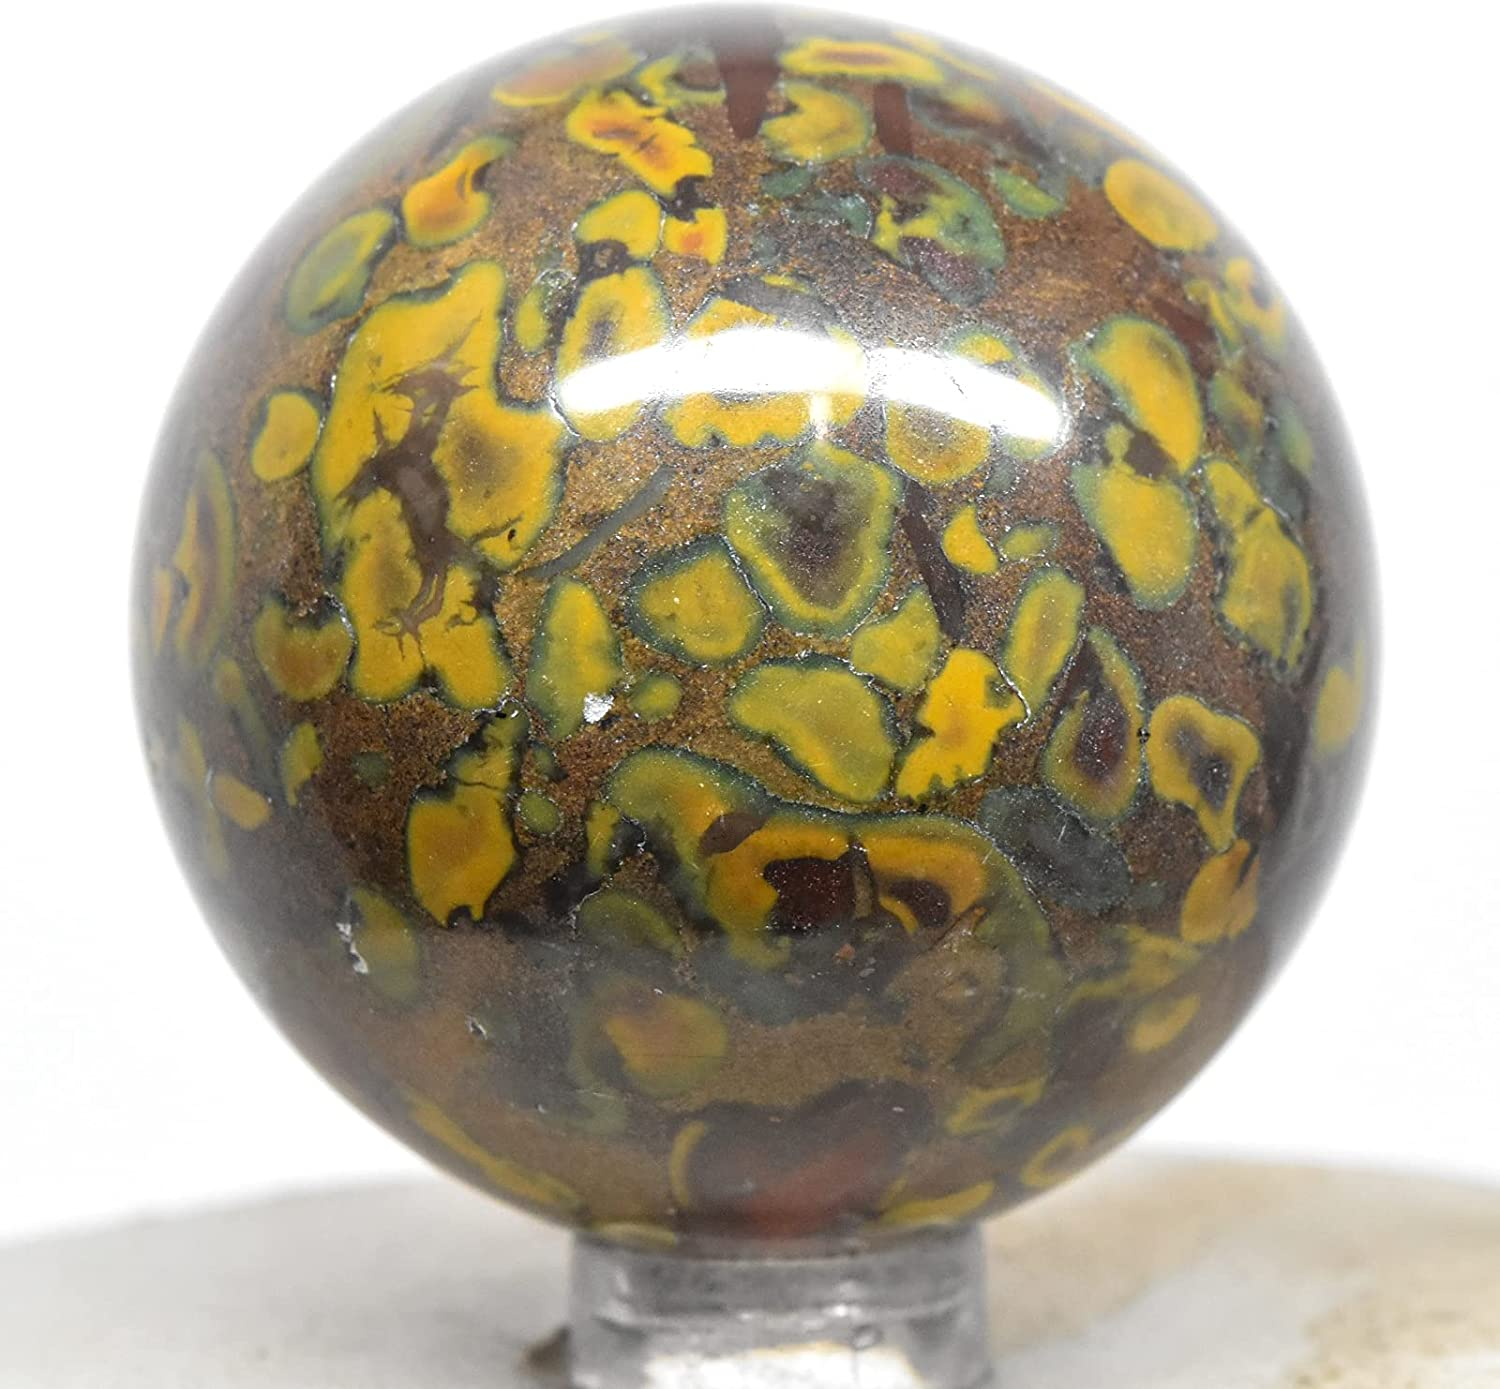 47mm 155g Ajooba Fruit Jasper Natur Now free shipping Polished Sphere Conglomerate SEAL limited product